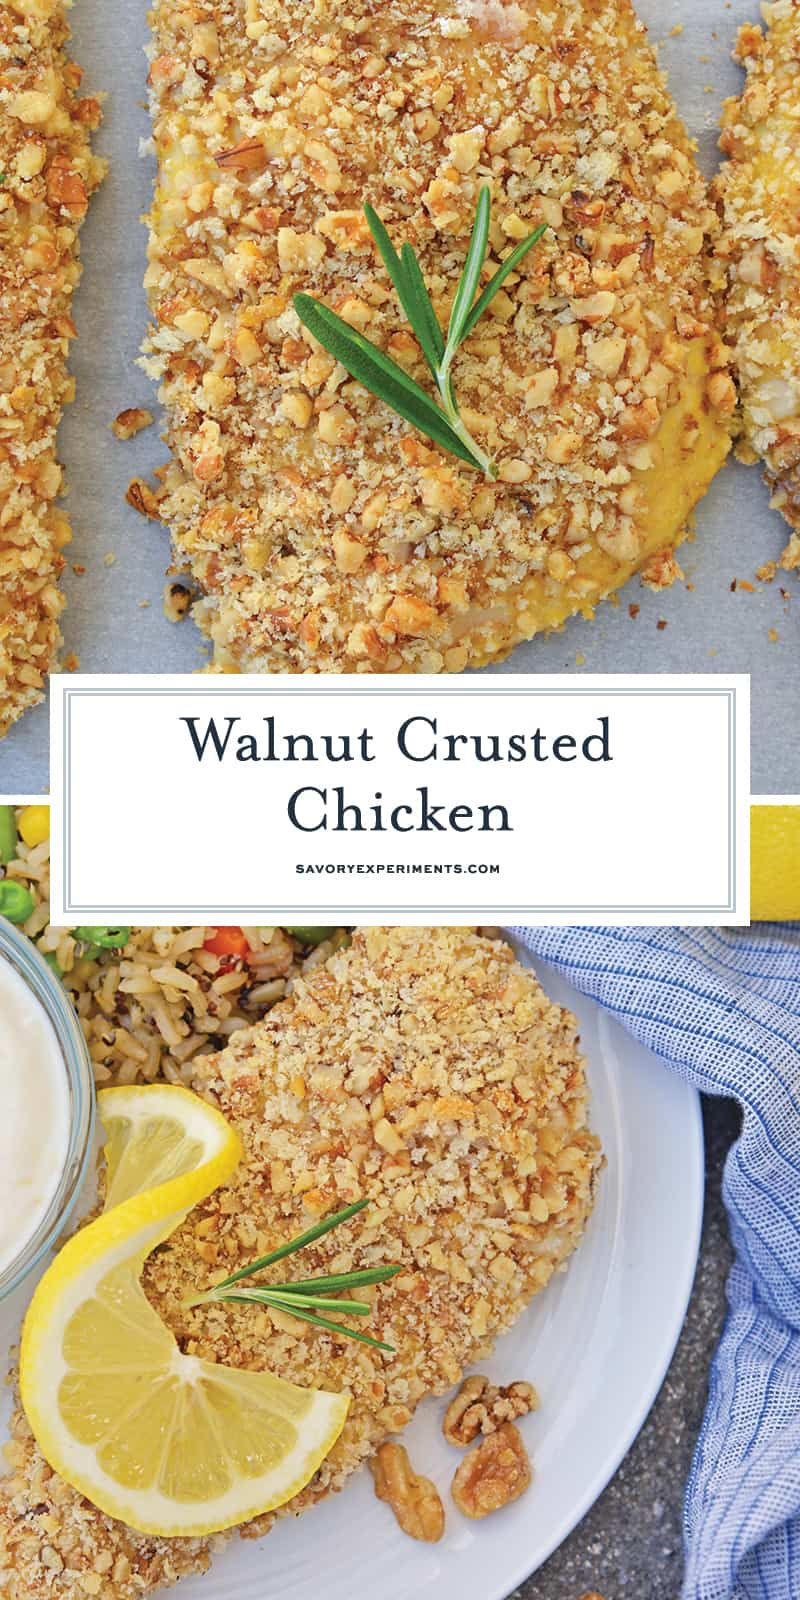 Walnut Crusted Chicken is a deliciously healthy, crunchy chicken with a cool dipping sauce! Made with chopped walnuts, panko bread crumbs, and fresh rosemary! #walnutcrustedchicken #rosemarychicken www.savoryexperiments.com